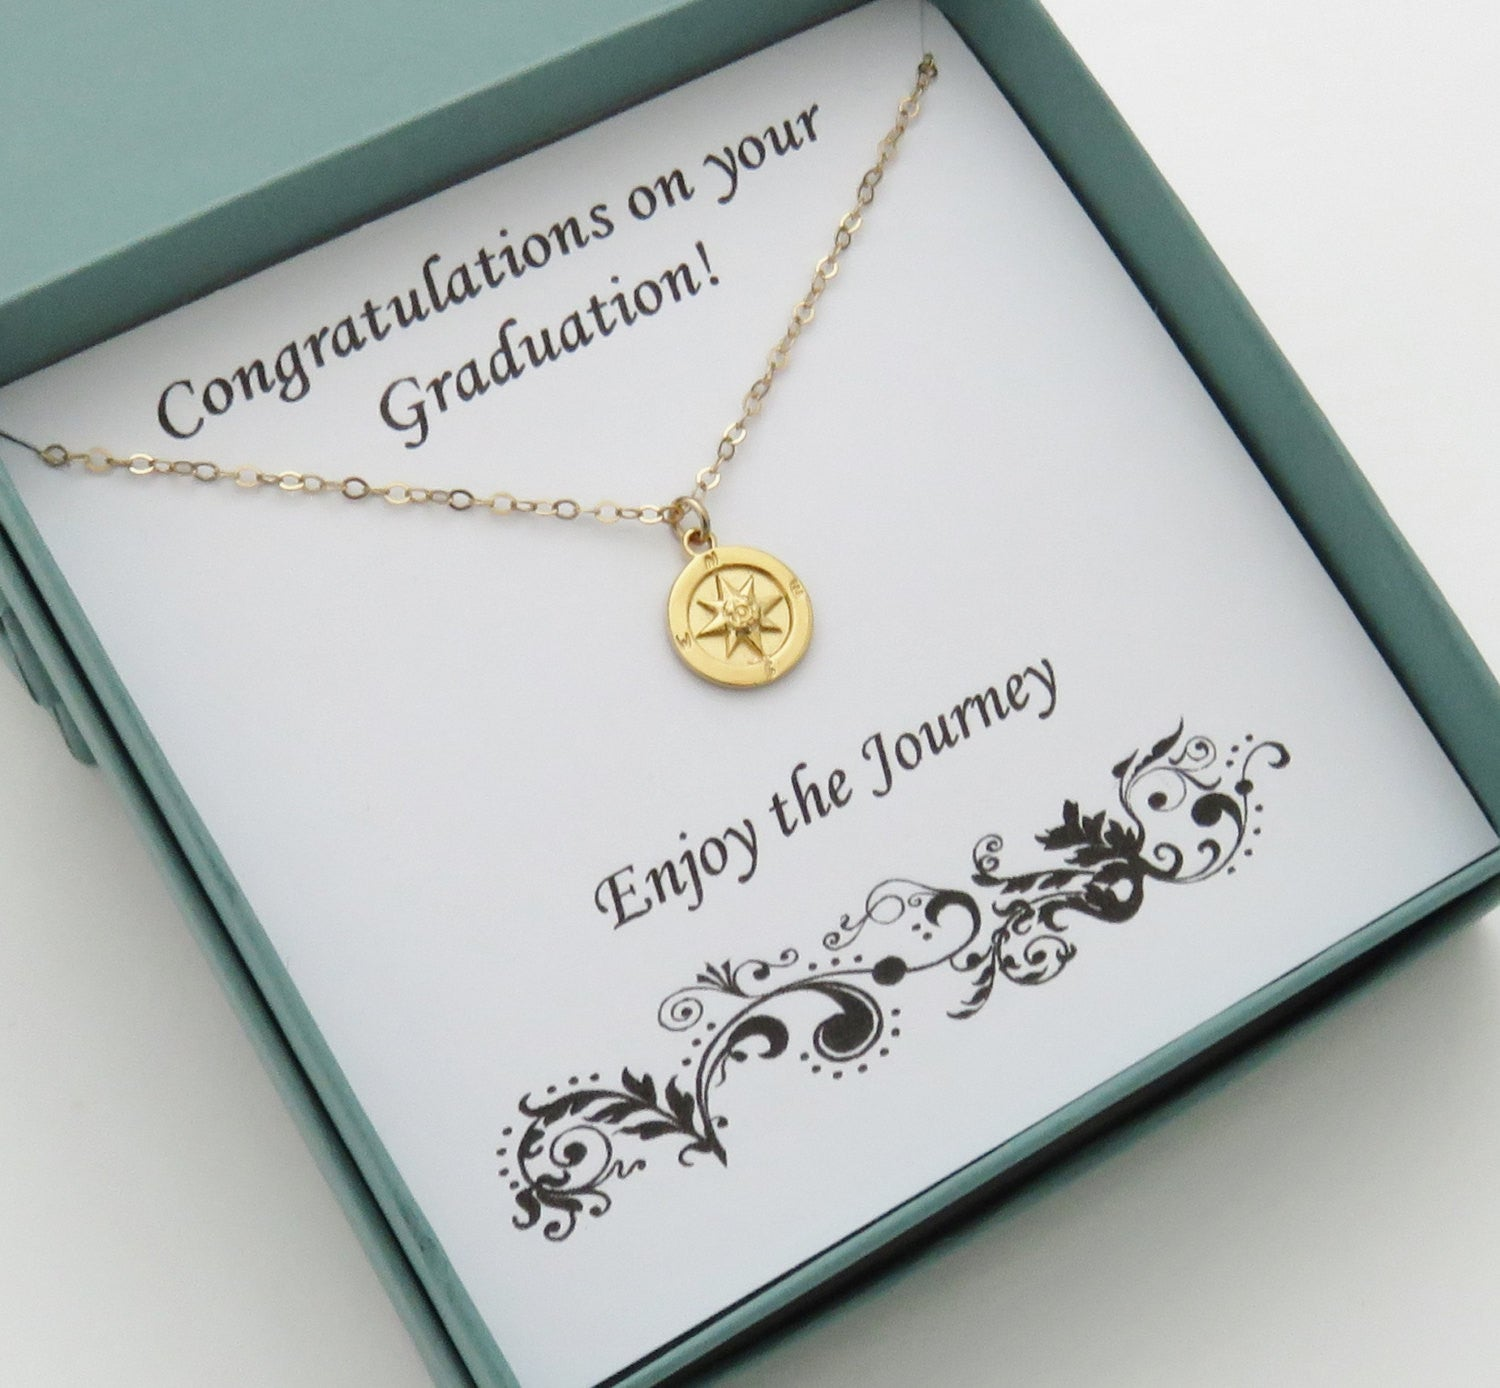 Gold compass necklace graduation gift for her marciahdesigns gold compass necklace graduation gift for her handmade jewelry solutioingenieria Images